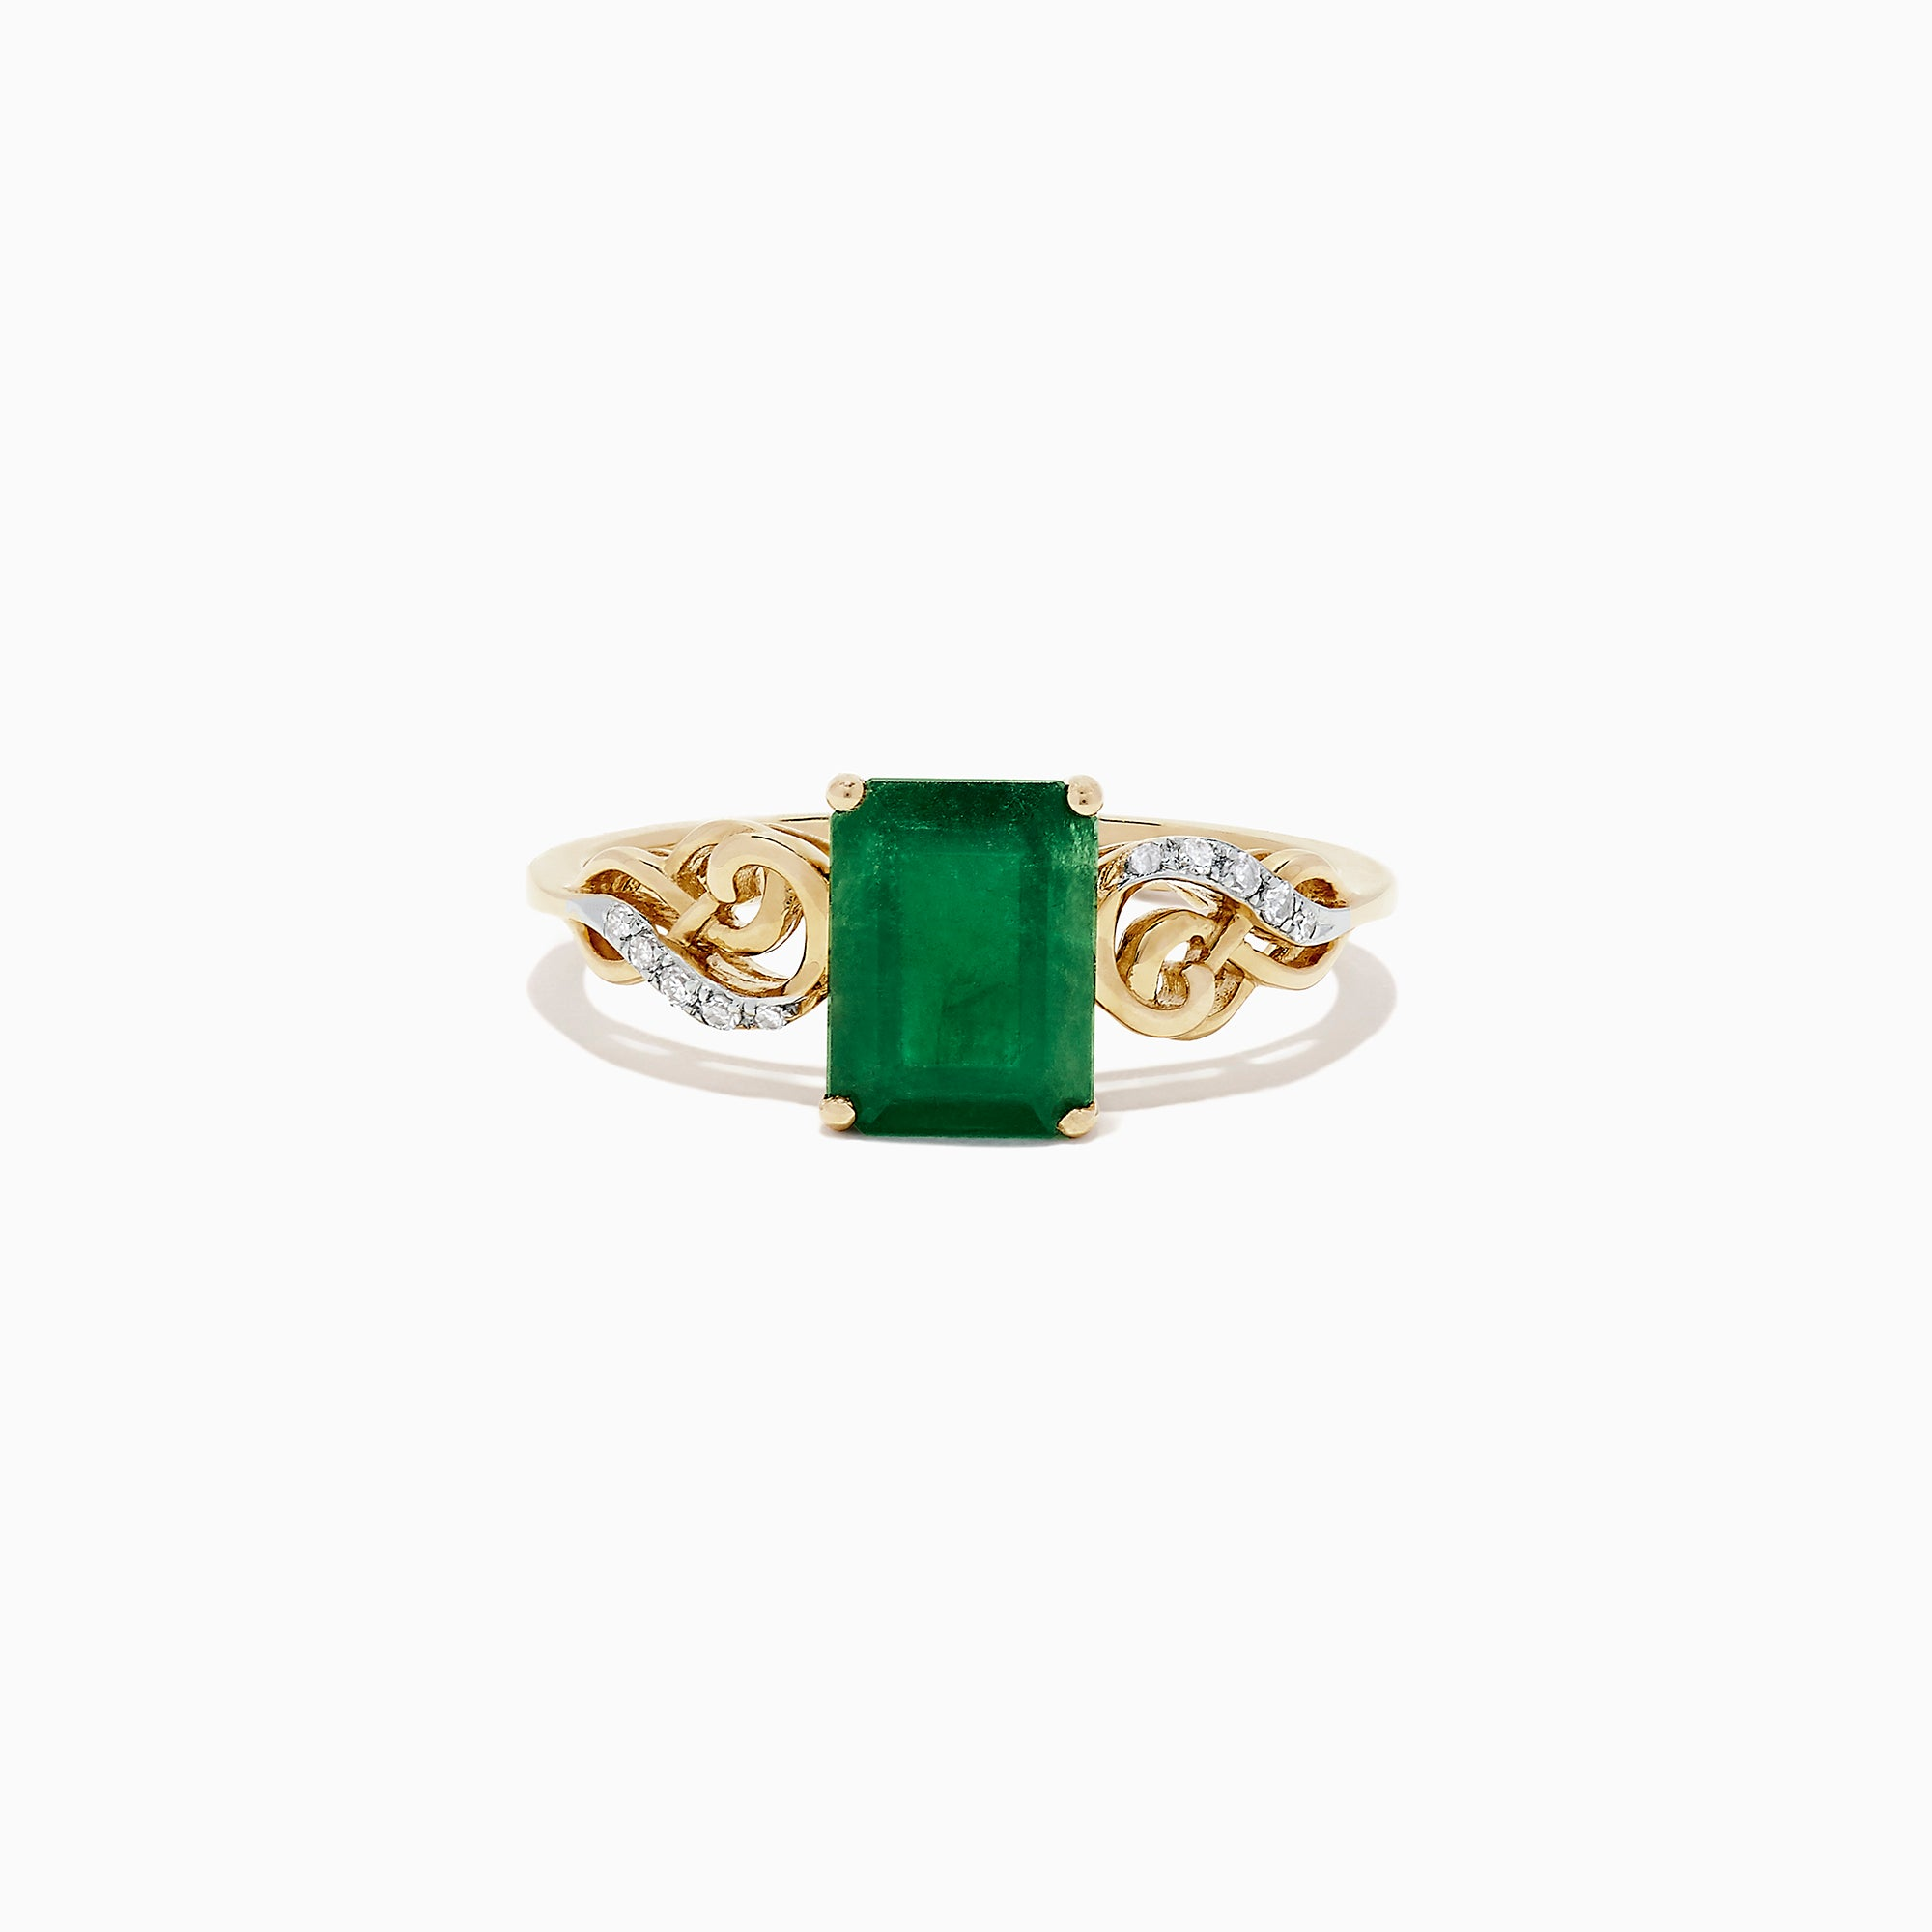 Effy 14K Yellow Gold Emerald and Diamond Ring, 1.46 TCW